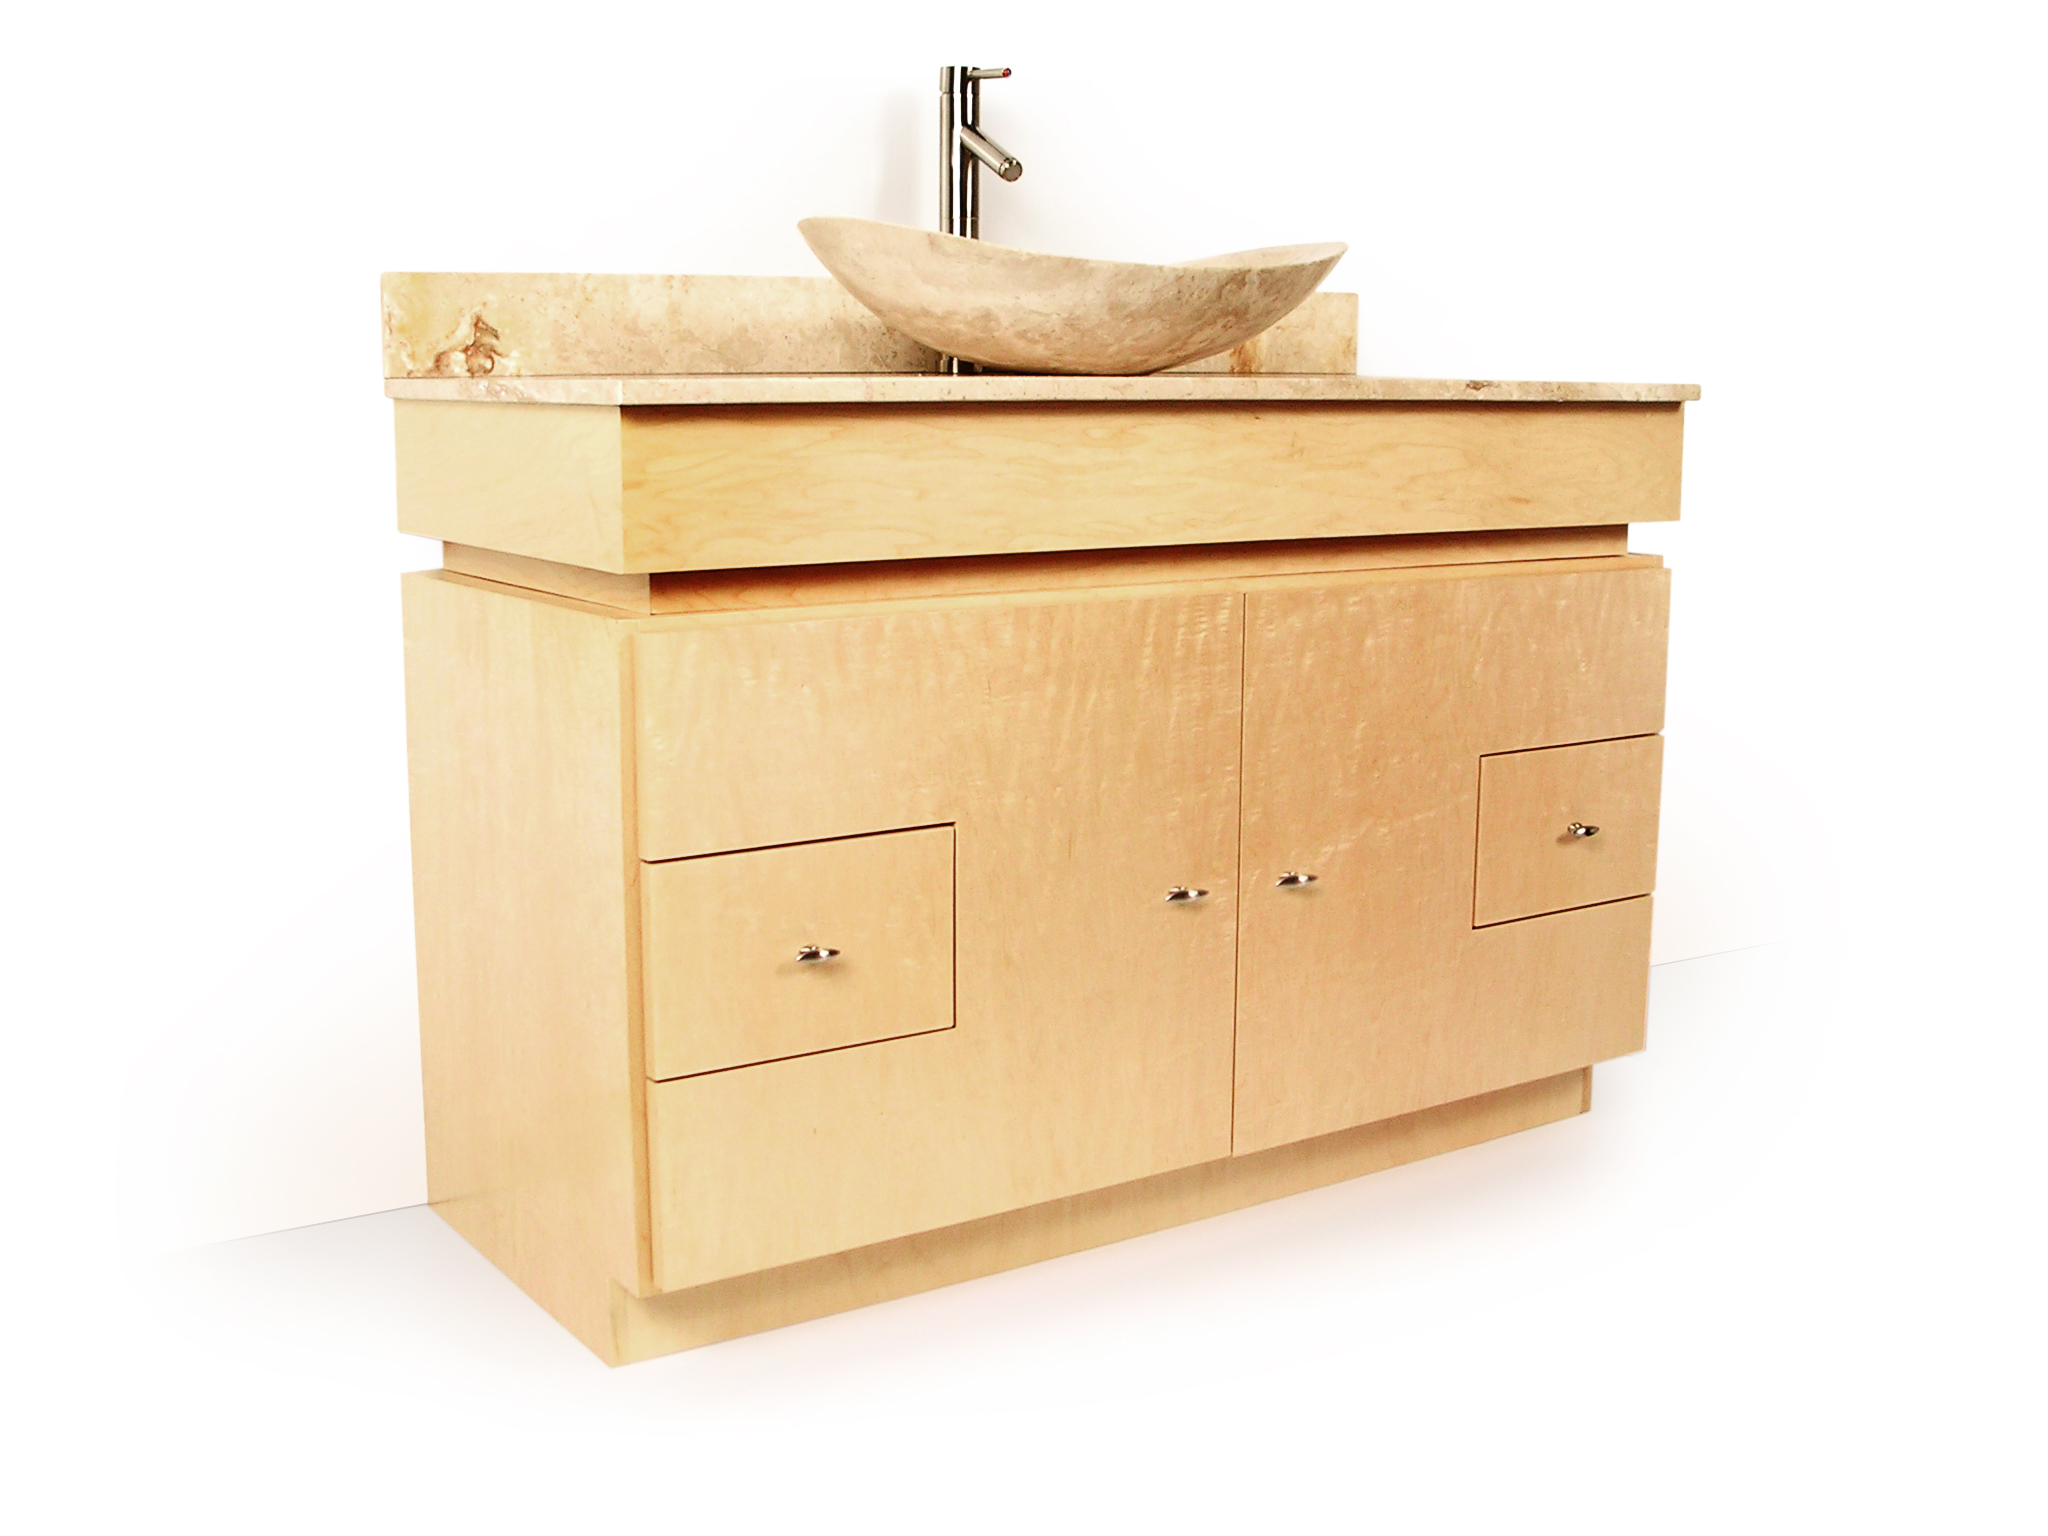 Mdv modular vanity stretcher for Prefabricated bathroom cabinets